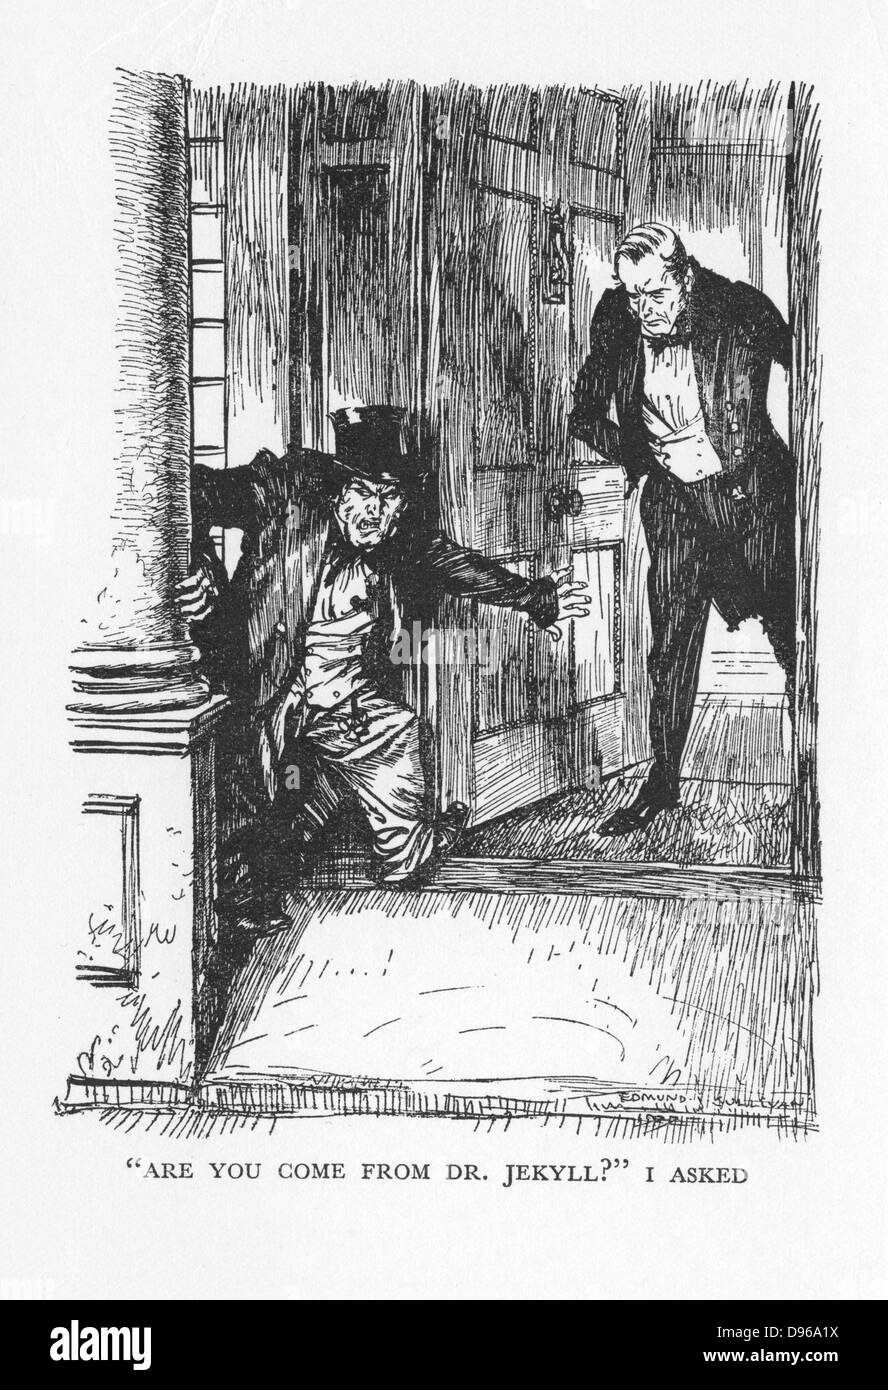 the strange case of dr jekyll and mr hyde Strange case of dr jekyll and mr hyde is a gothic novella by scottish author robert louis stevenson, first published in 1886 the work is also known as the strange .